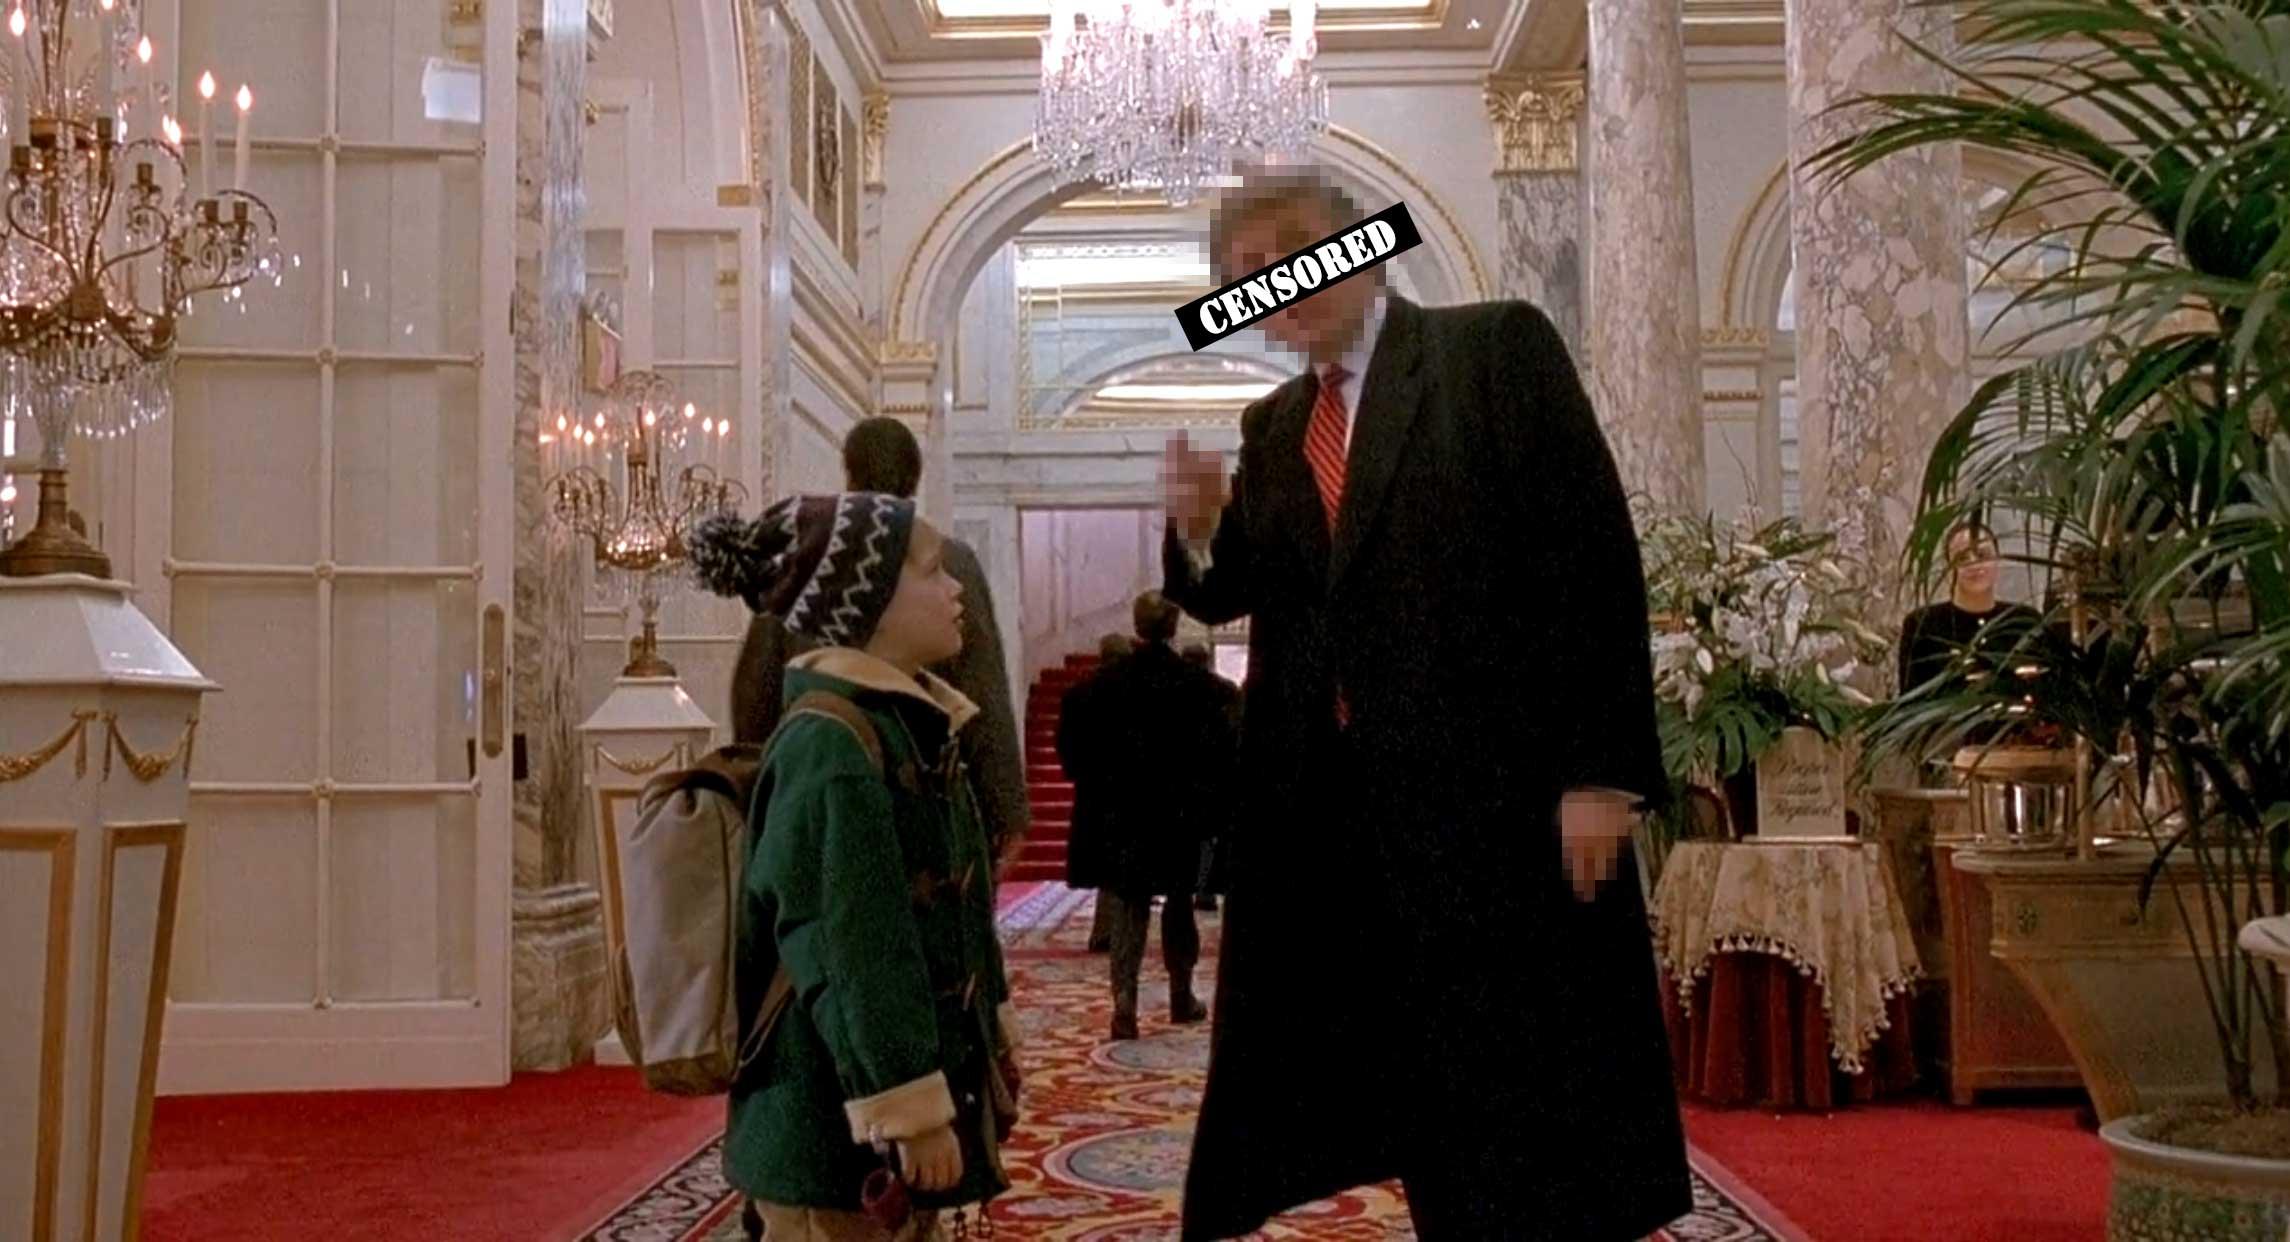 Edited still from Home Alone 2